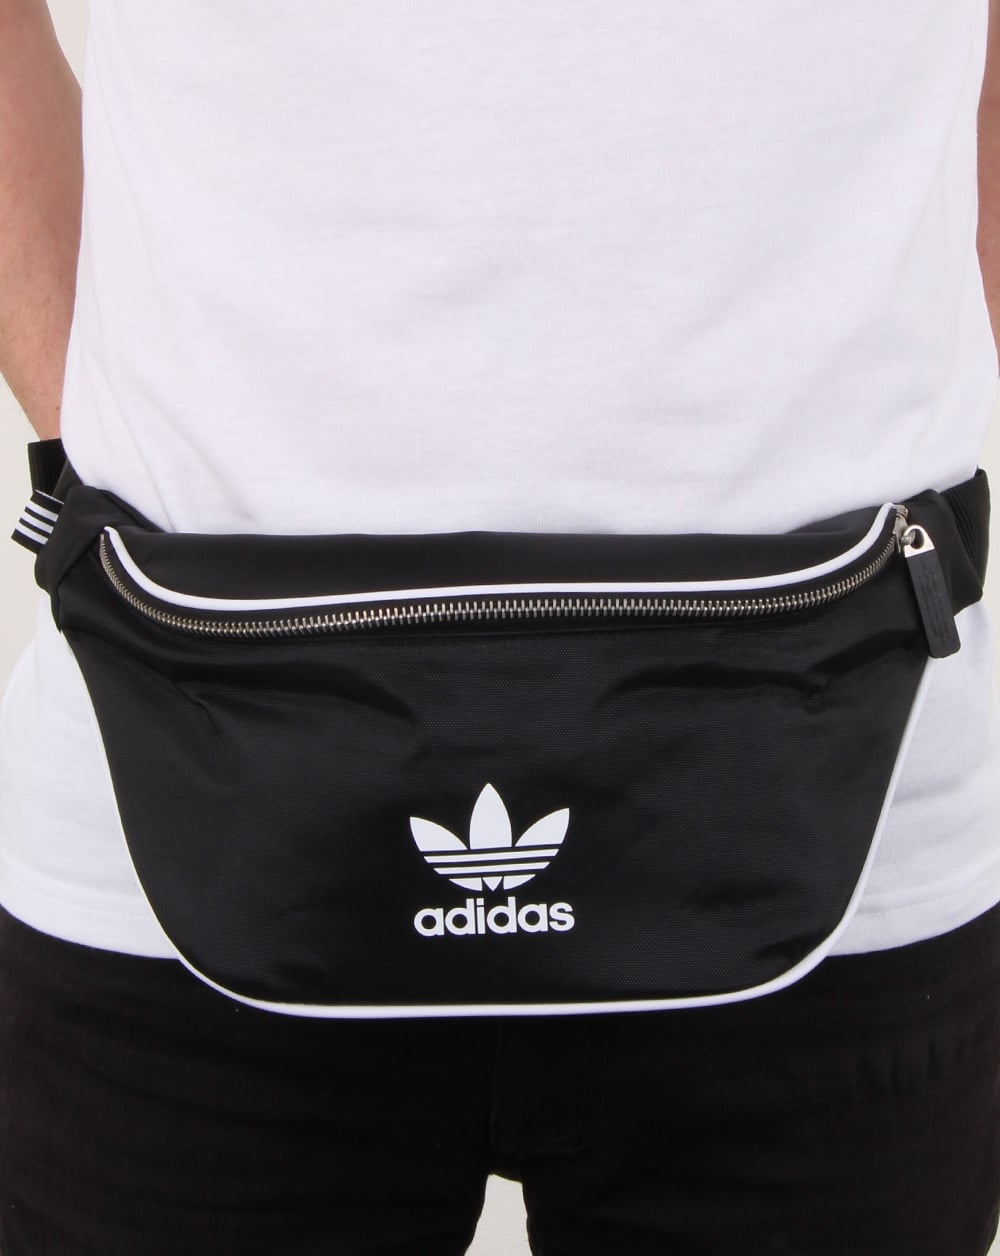 e76589f0e9 adidas Originals Adidas Originals Adicolor Waist Bag Black